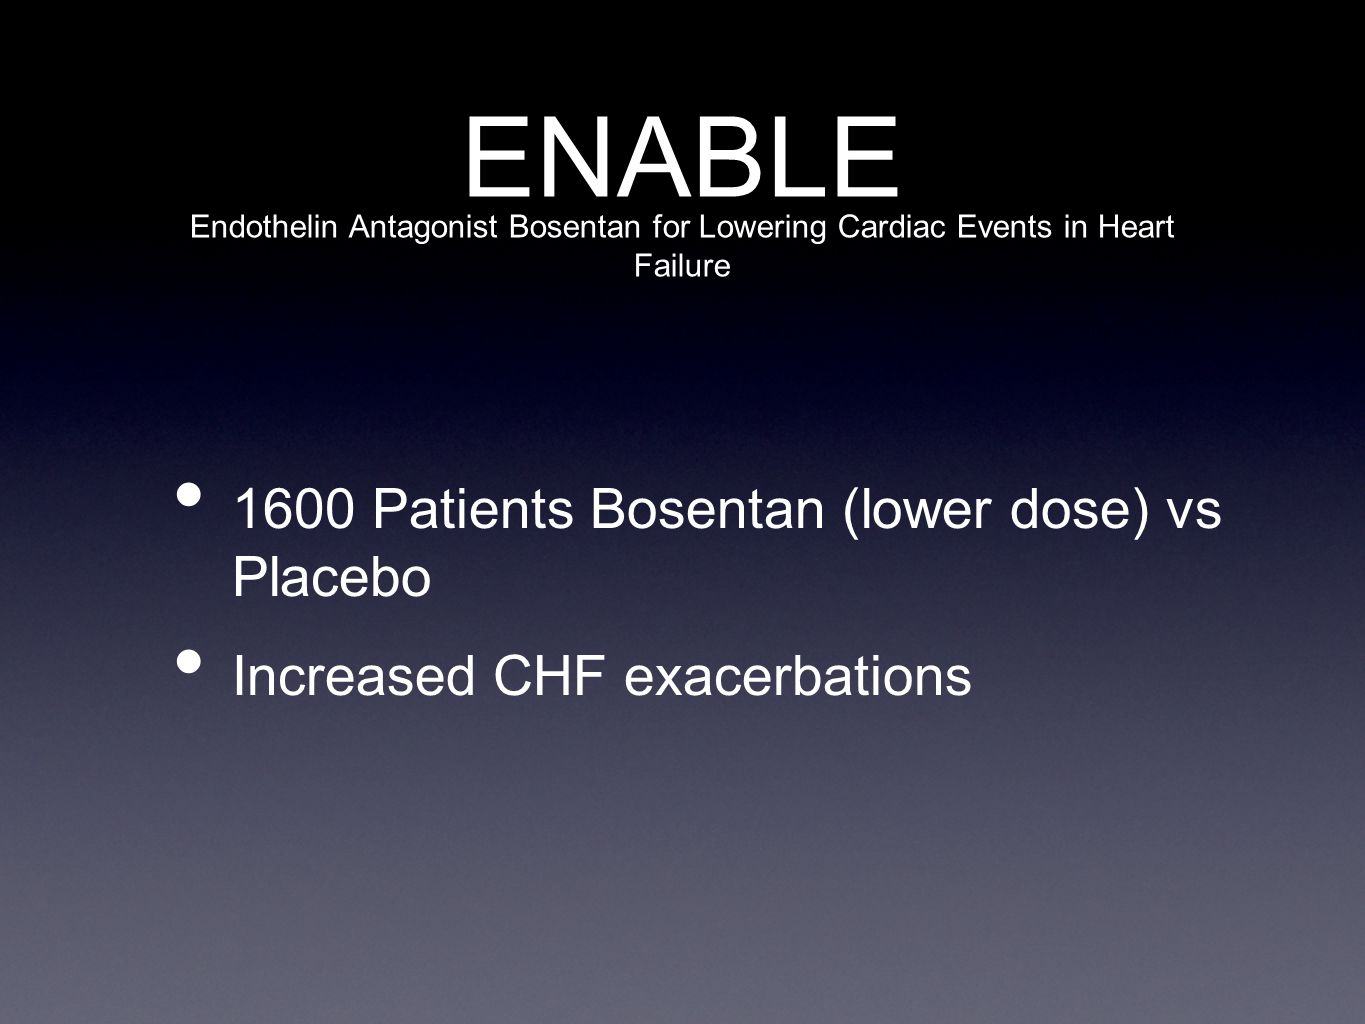 ENABLE 1600 Patients Bosentan (lower dose) vs Placebo